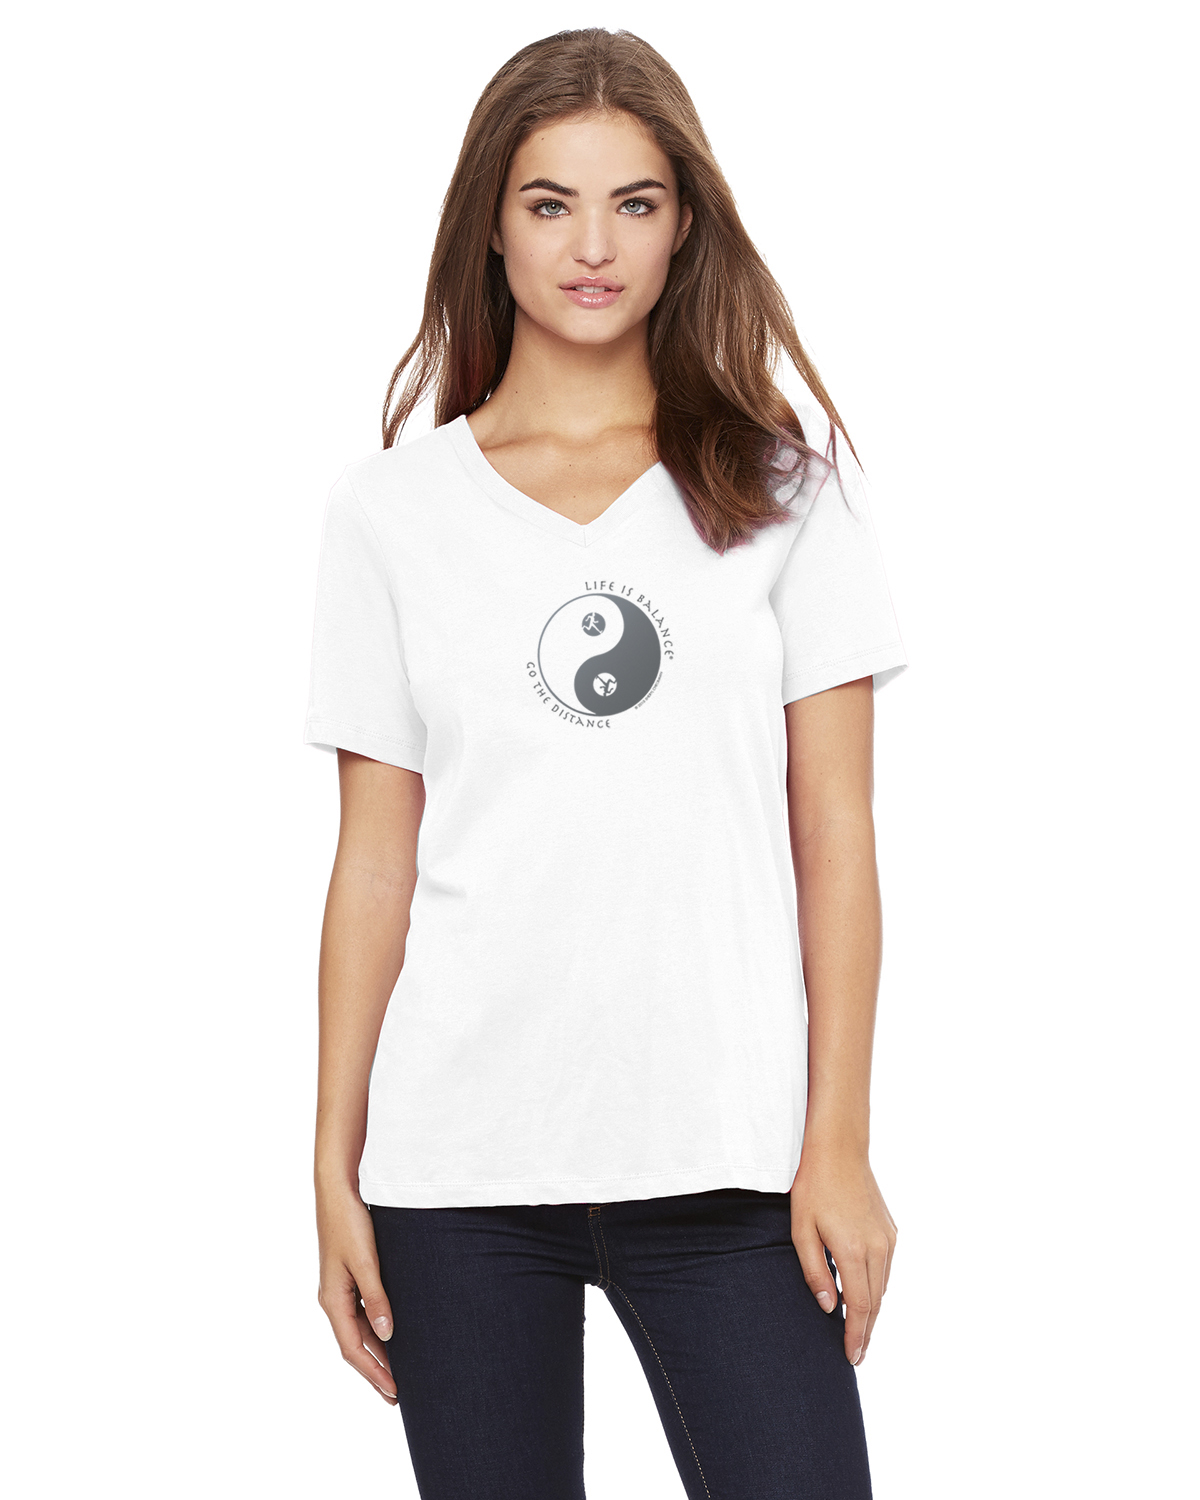 Women's short sleeve v-neck (white)